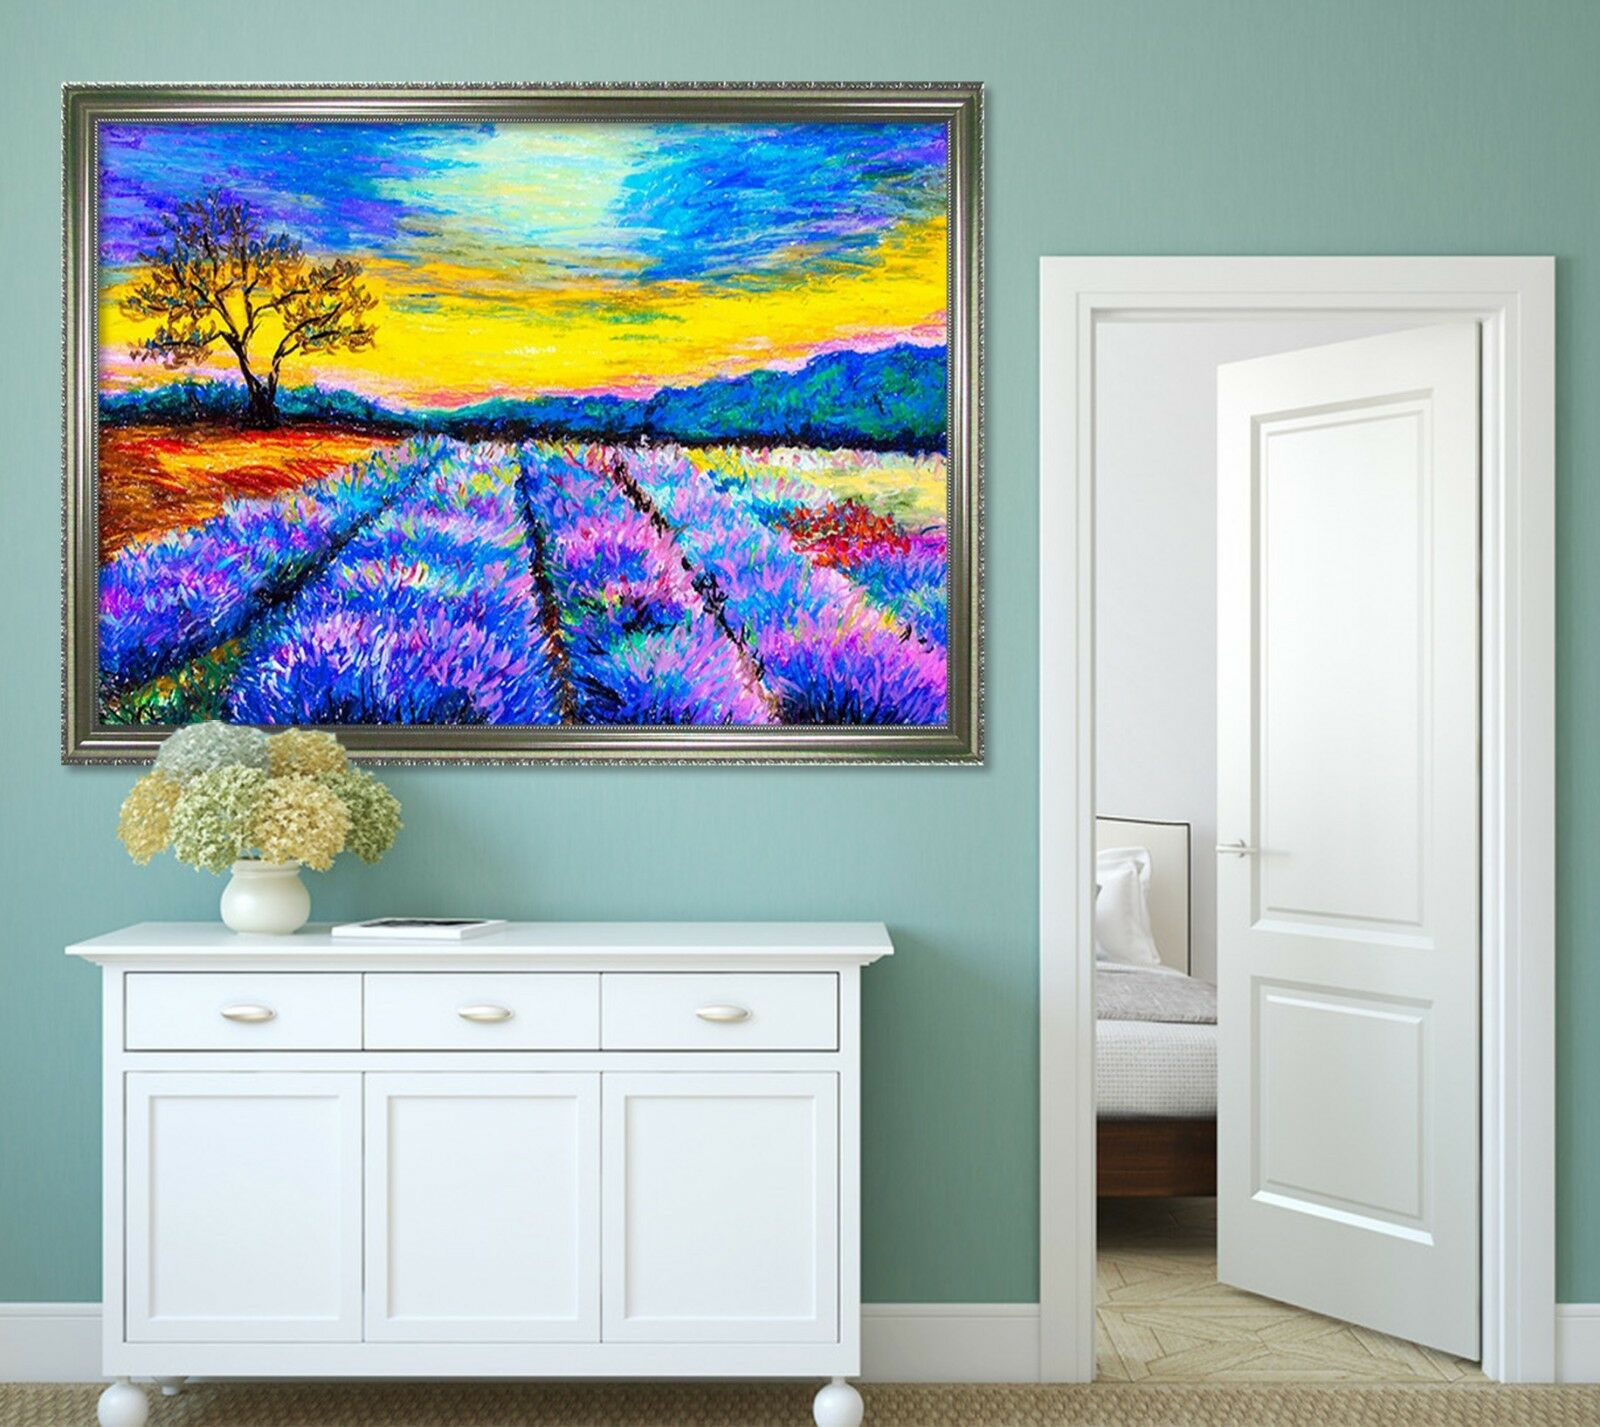 3D Paint Flower 6 Fake Framed Poster Home Decor Print Painting Unique Art Summer